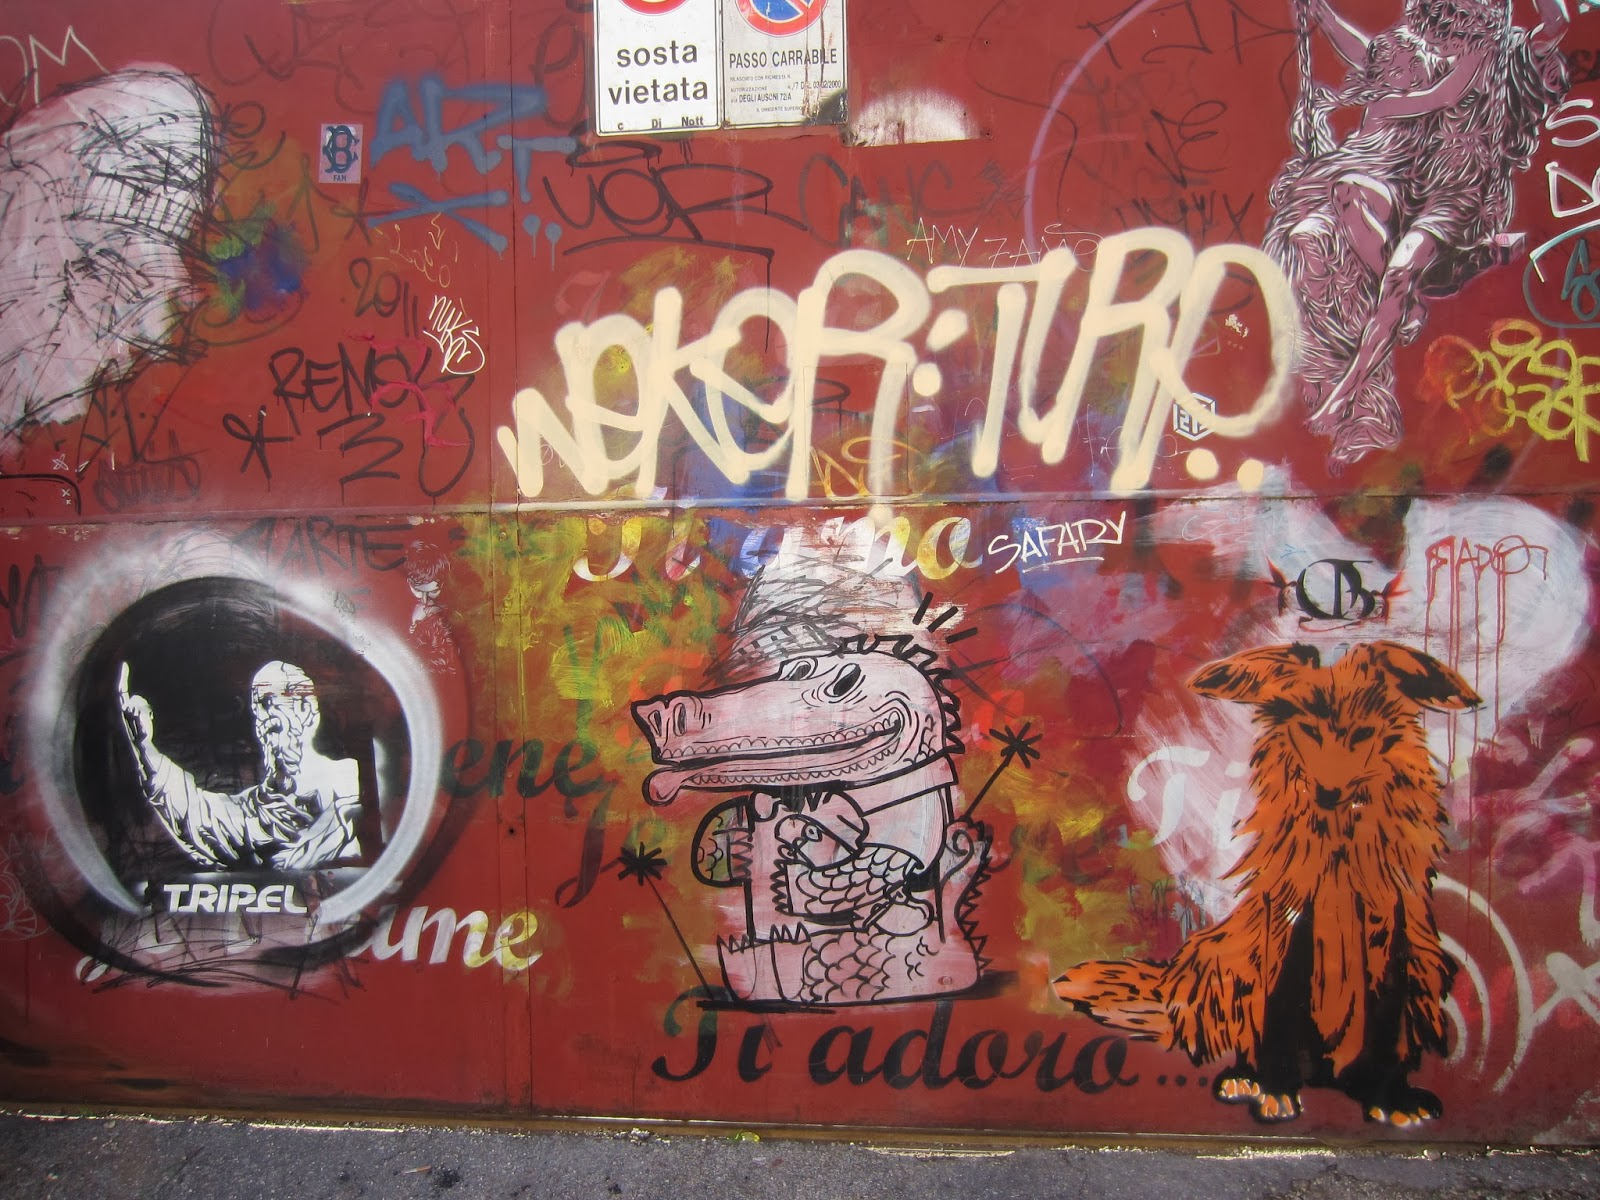 If there had been a app or a street art walking tour of rome we would have signed up but we couldnt find anything so we had to make our own as